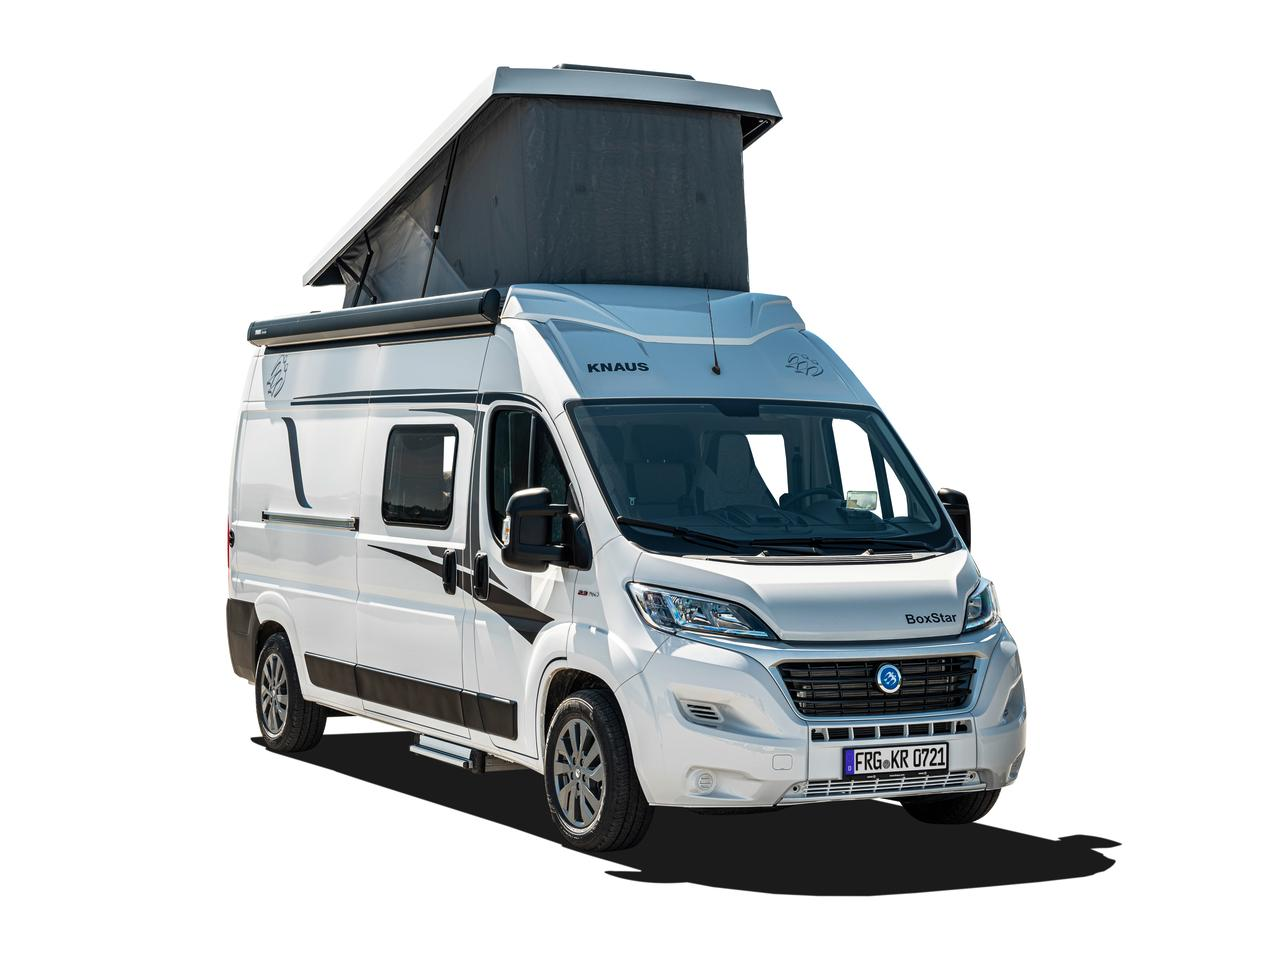 Knaus Boxstar 600 Street with new pop-up roof